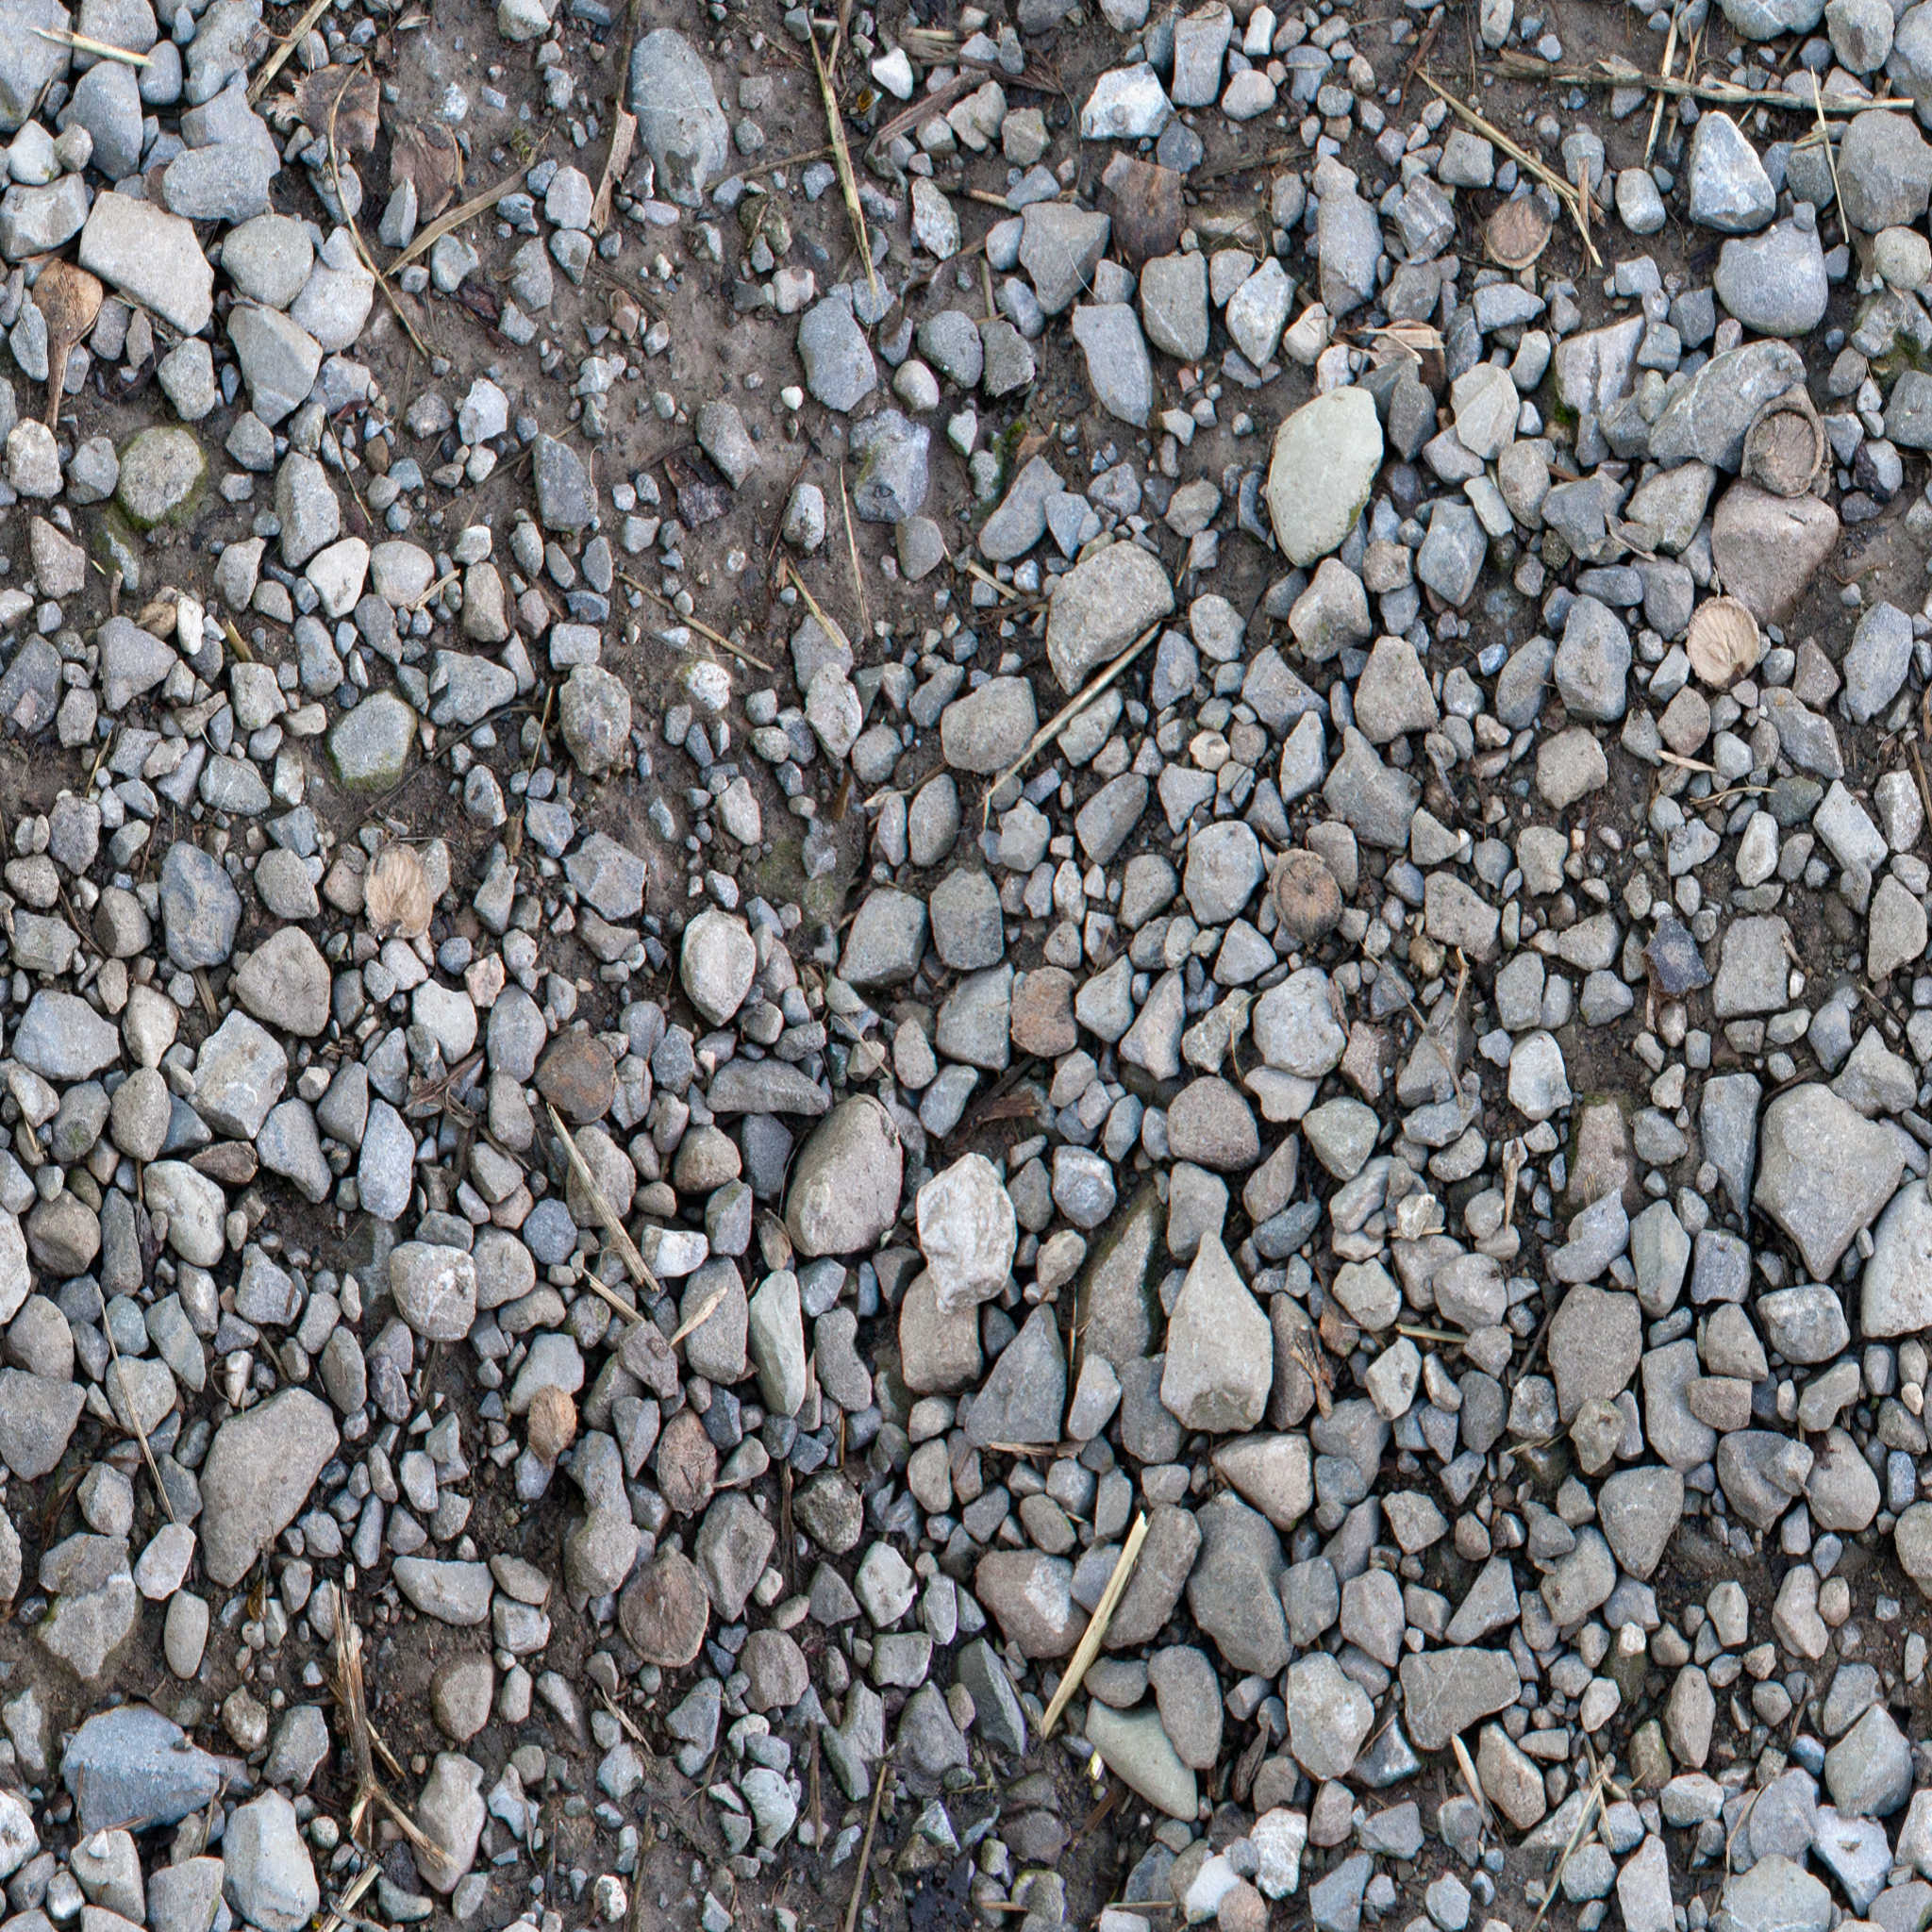 gravel-with-mud.jpg